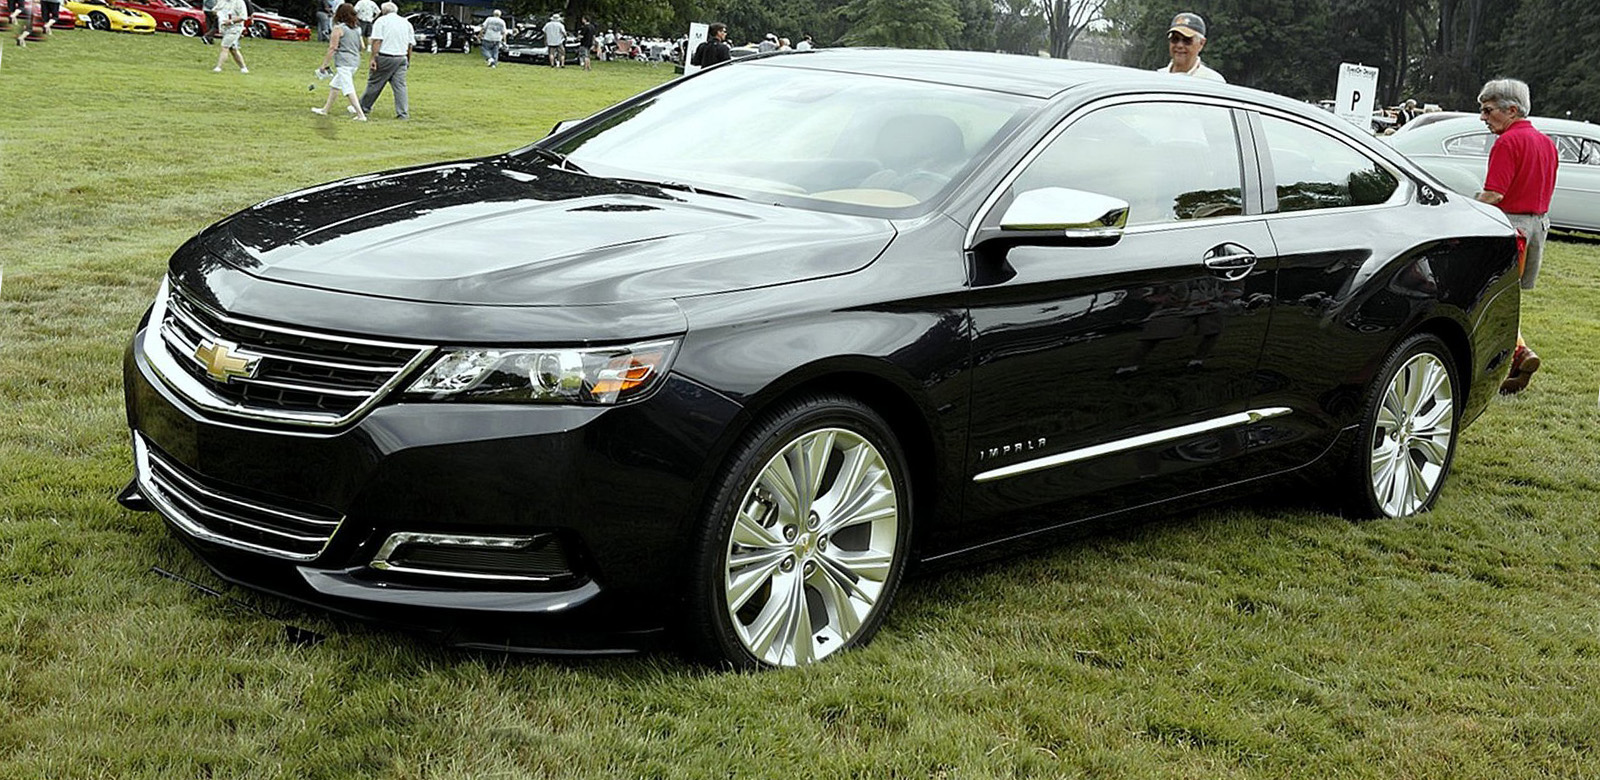 2015 chevrolet impala pictures information and specs auto. Black Bedroom Furniture Sets. Home Design Ideas